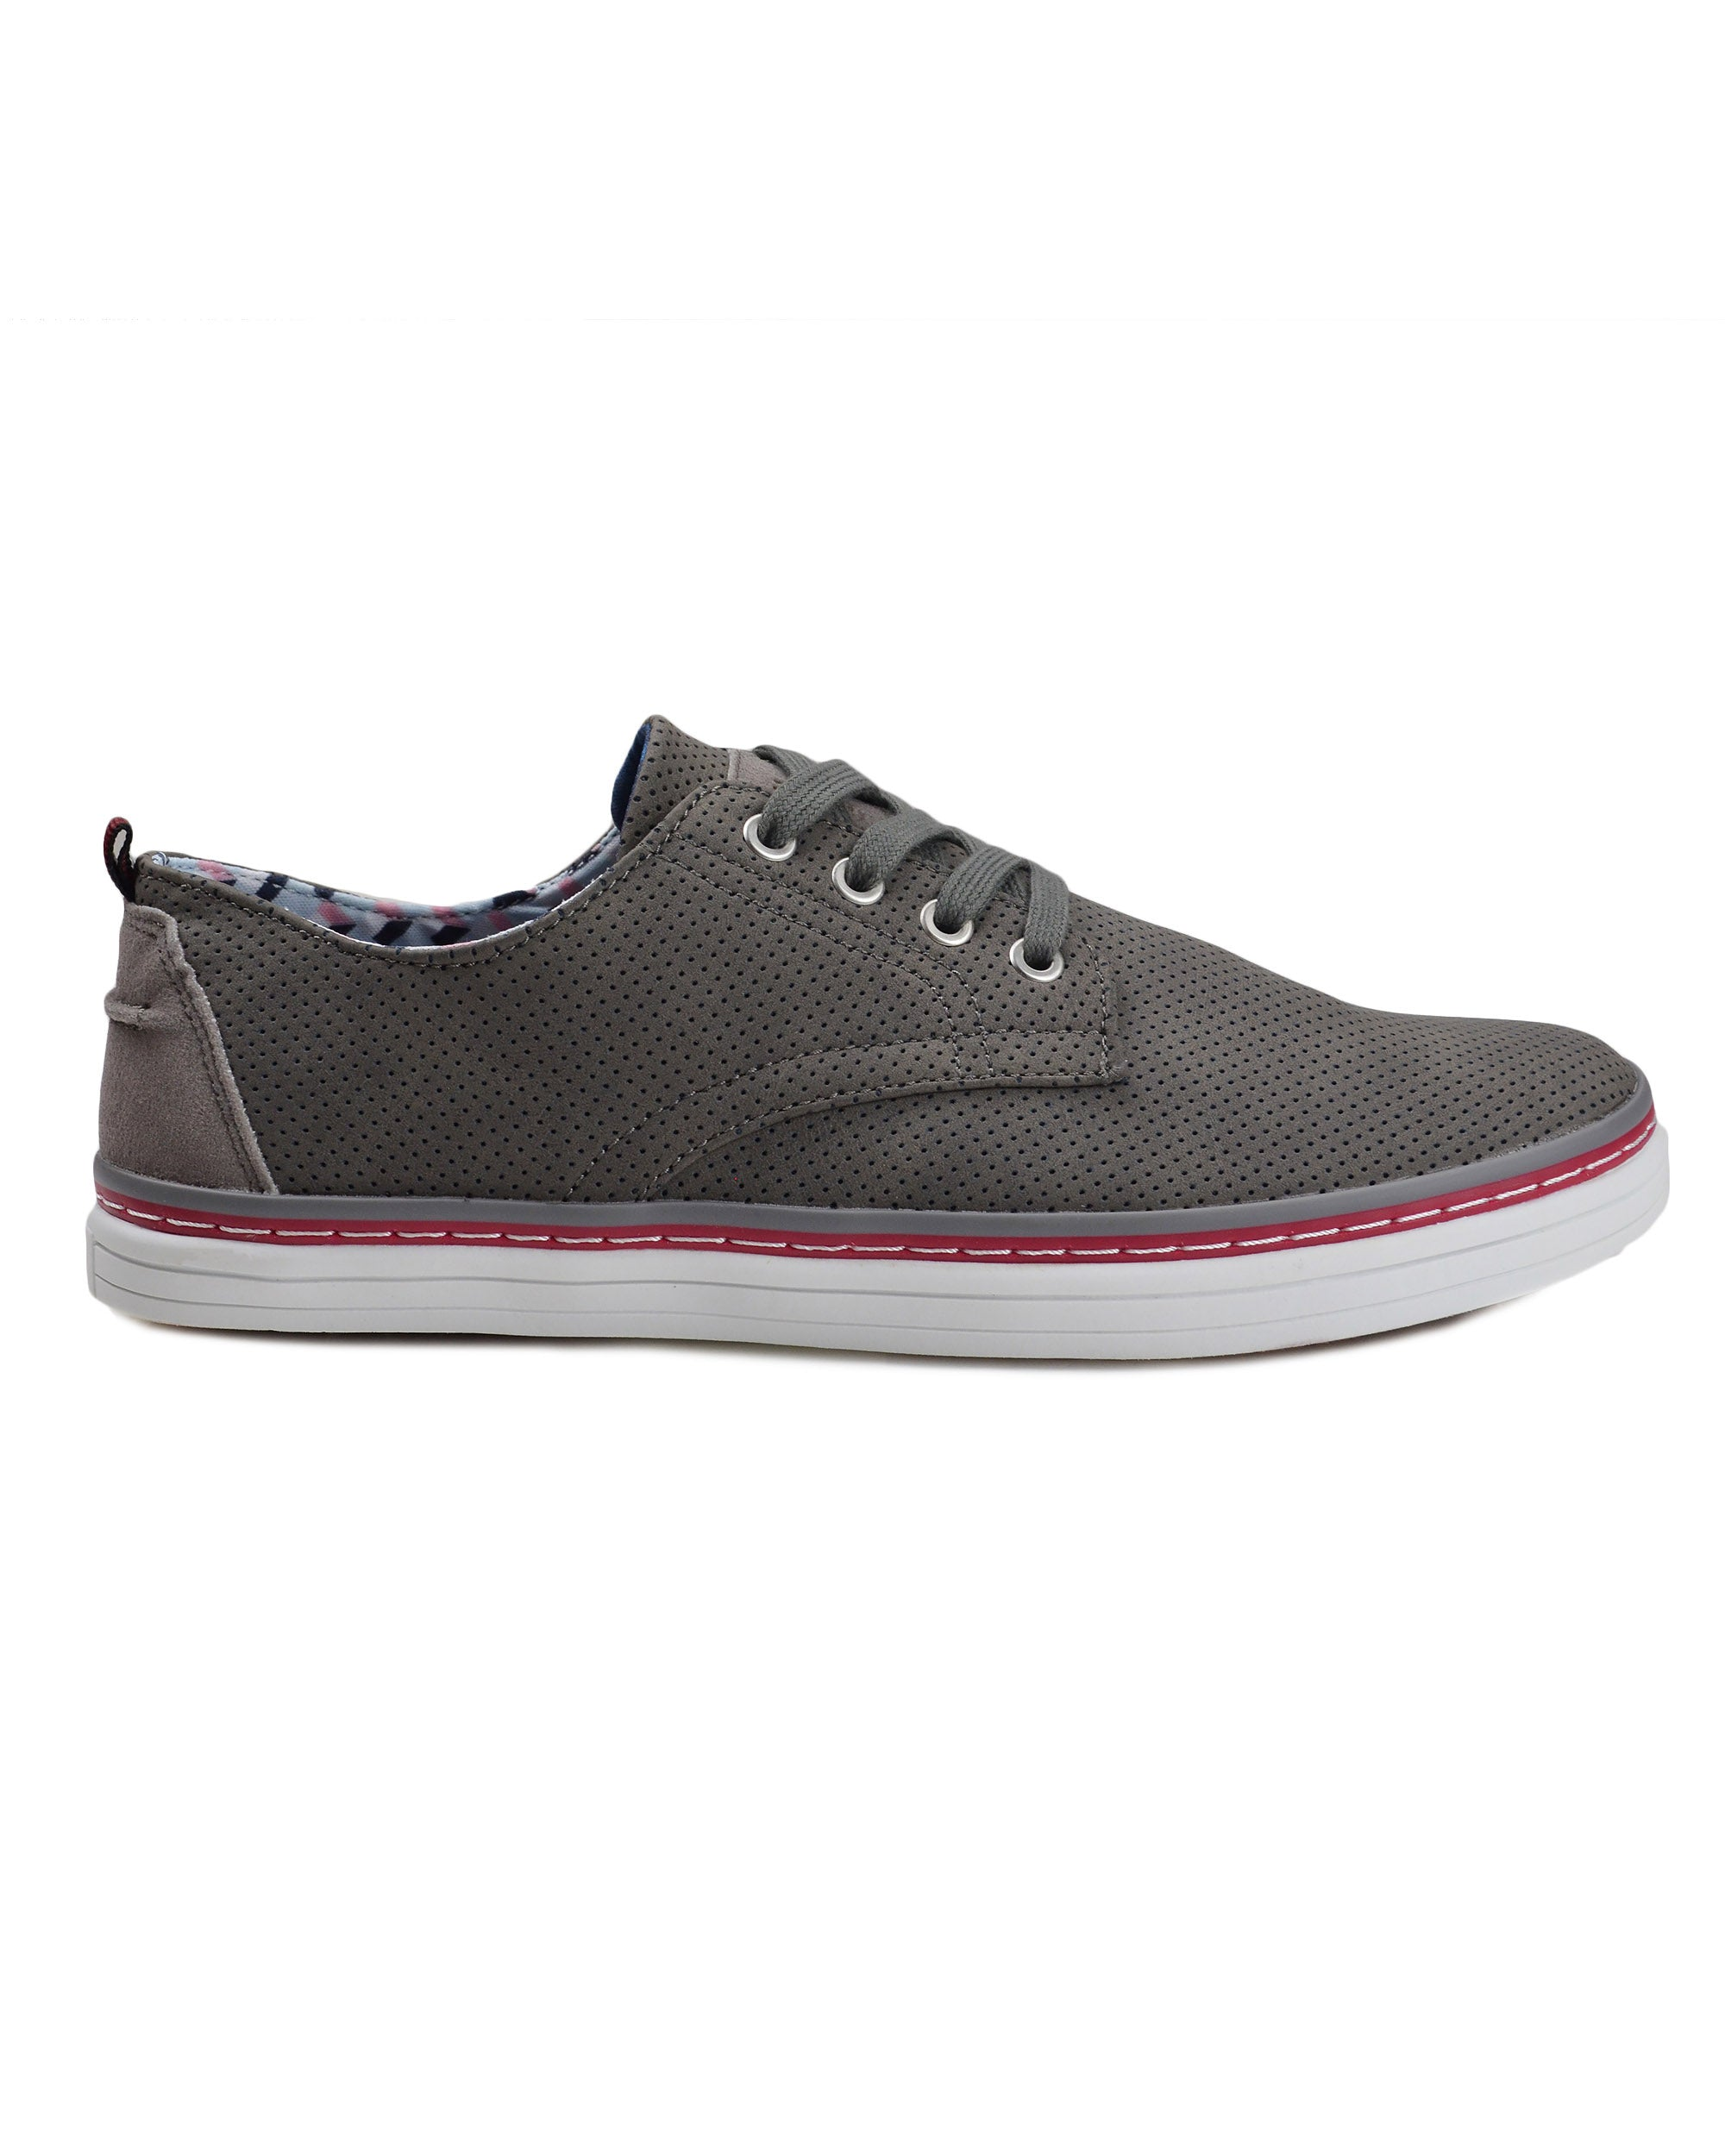 Bulldog Derby Plain Toe Shoe - Dark Grey